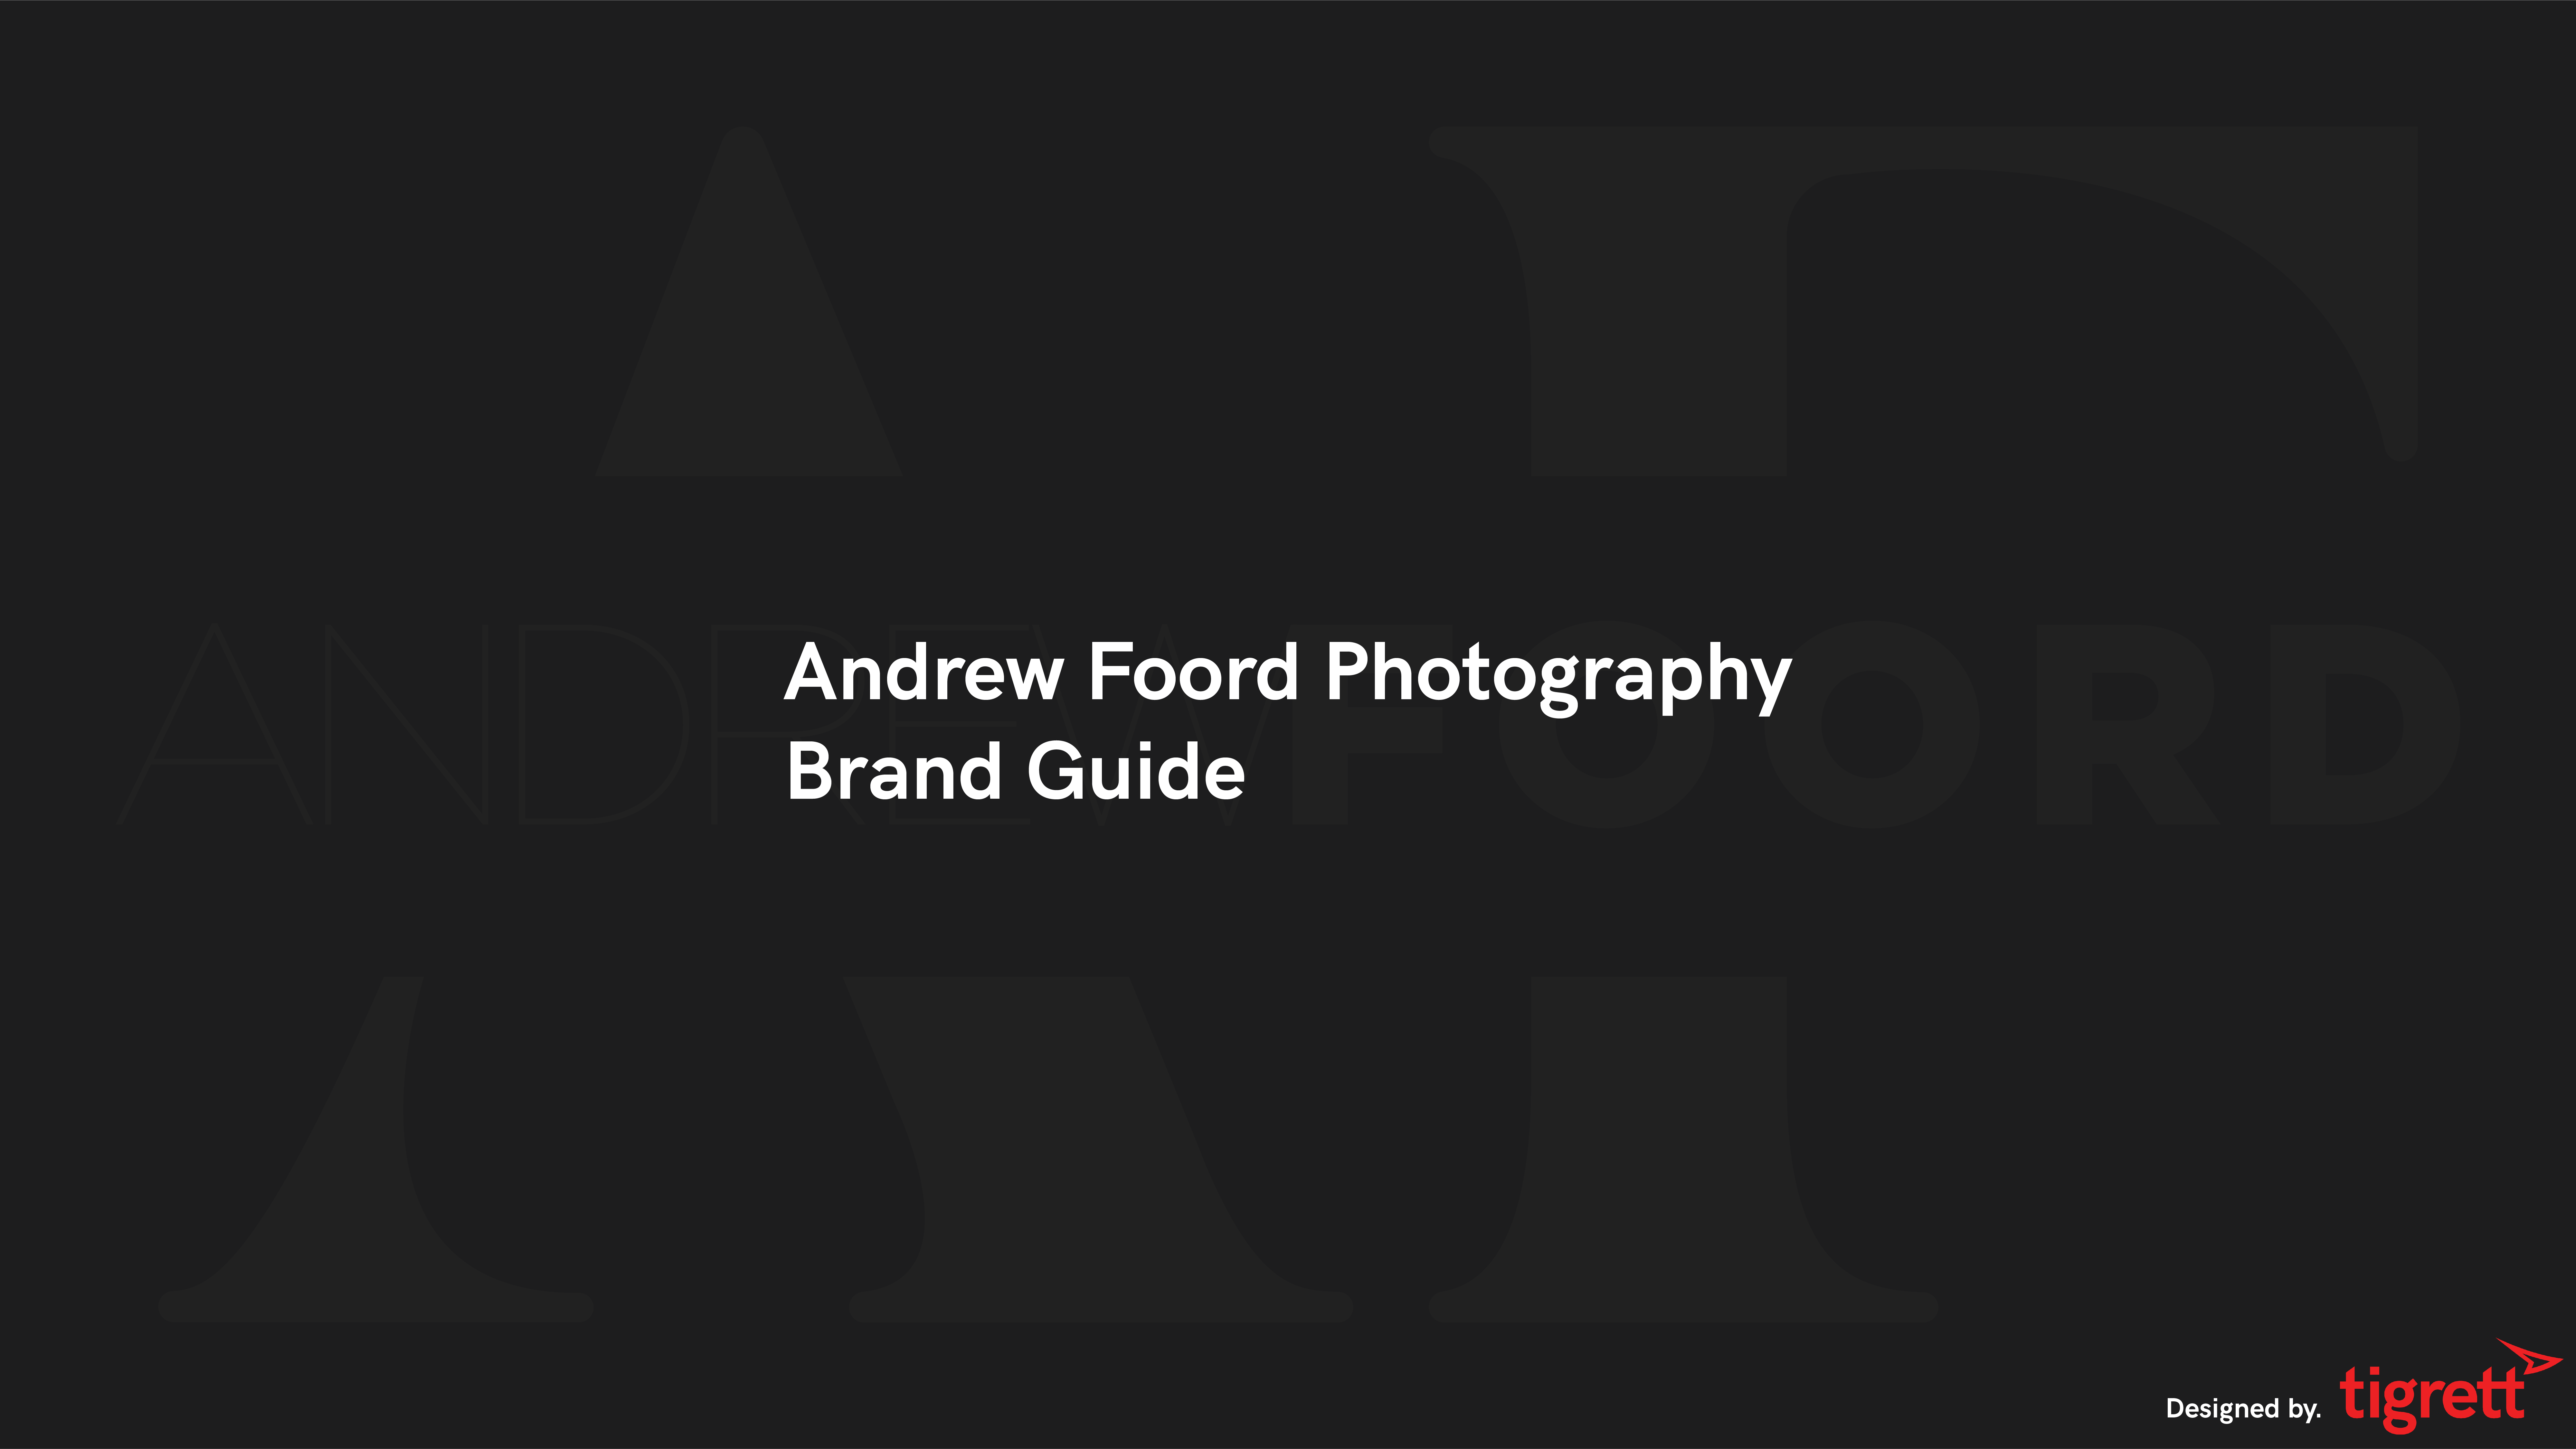 Andrew Foord Photography Brand Guide Intro Slide